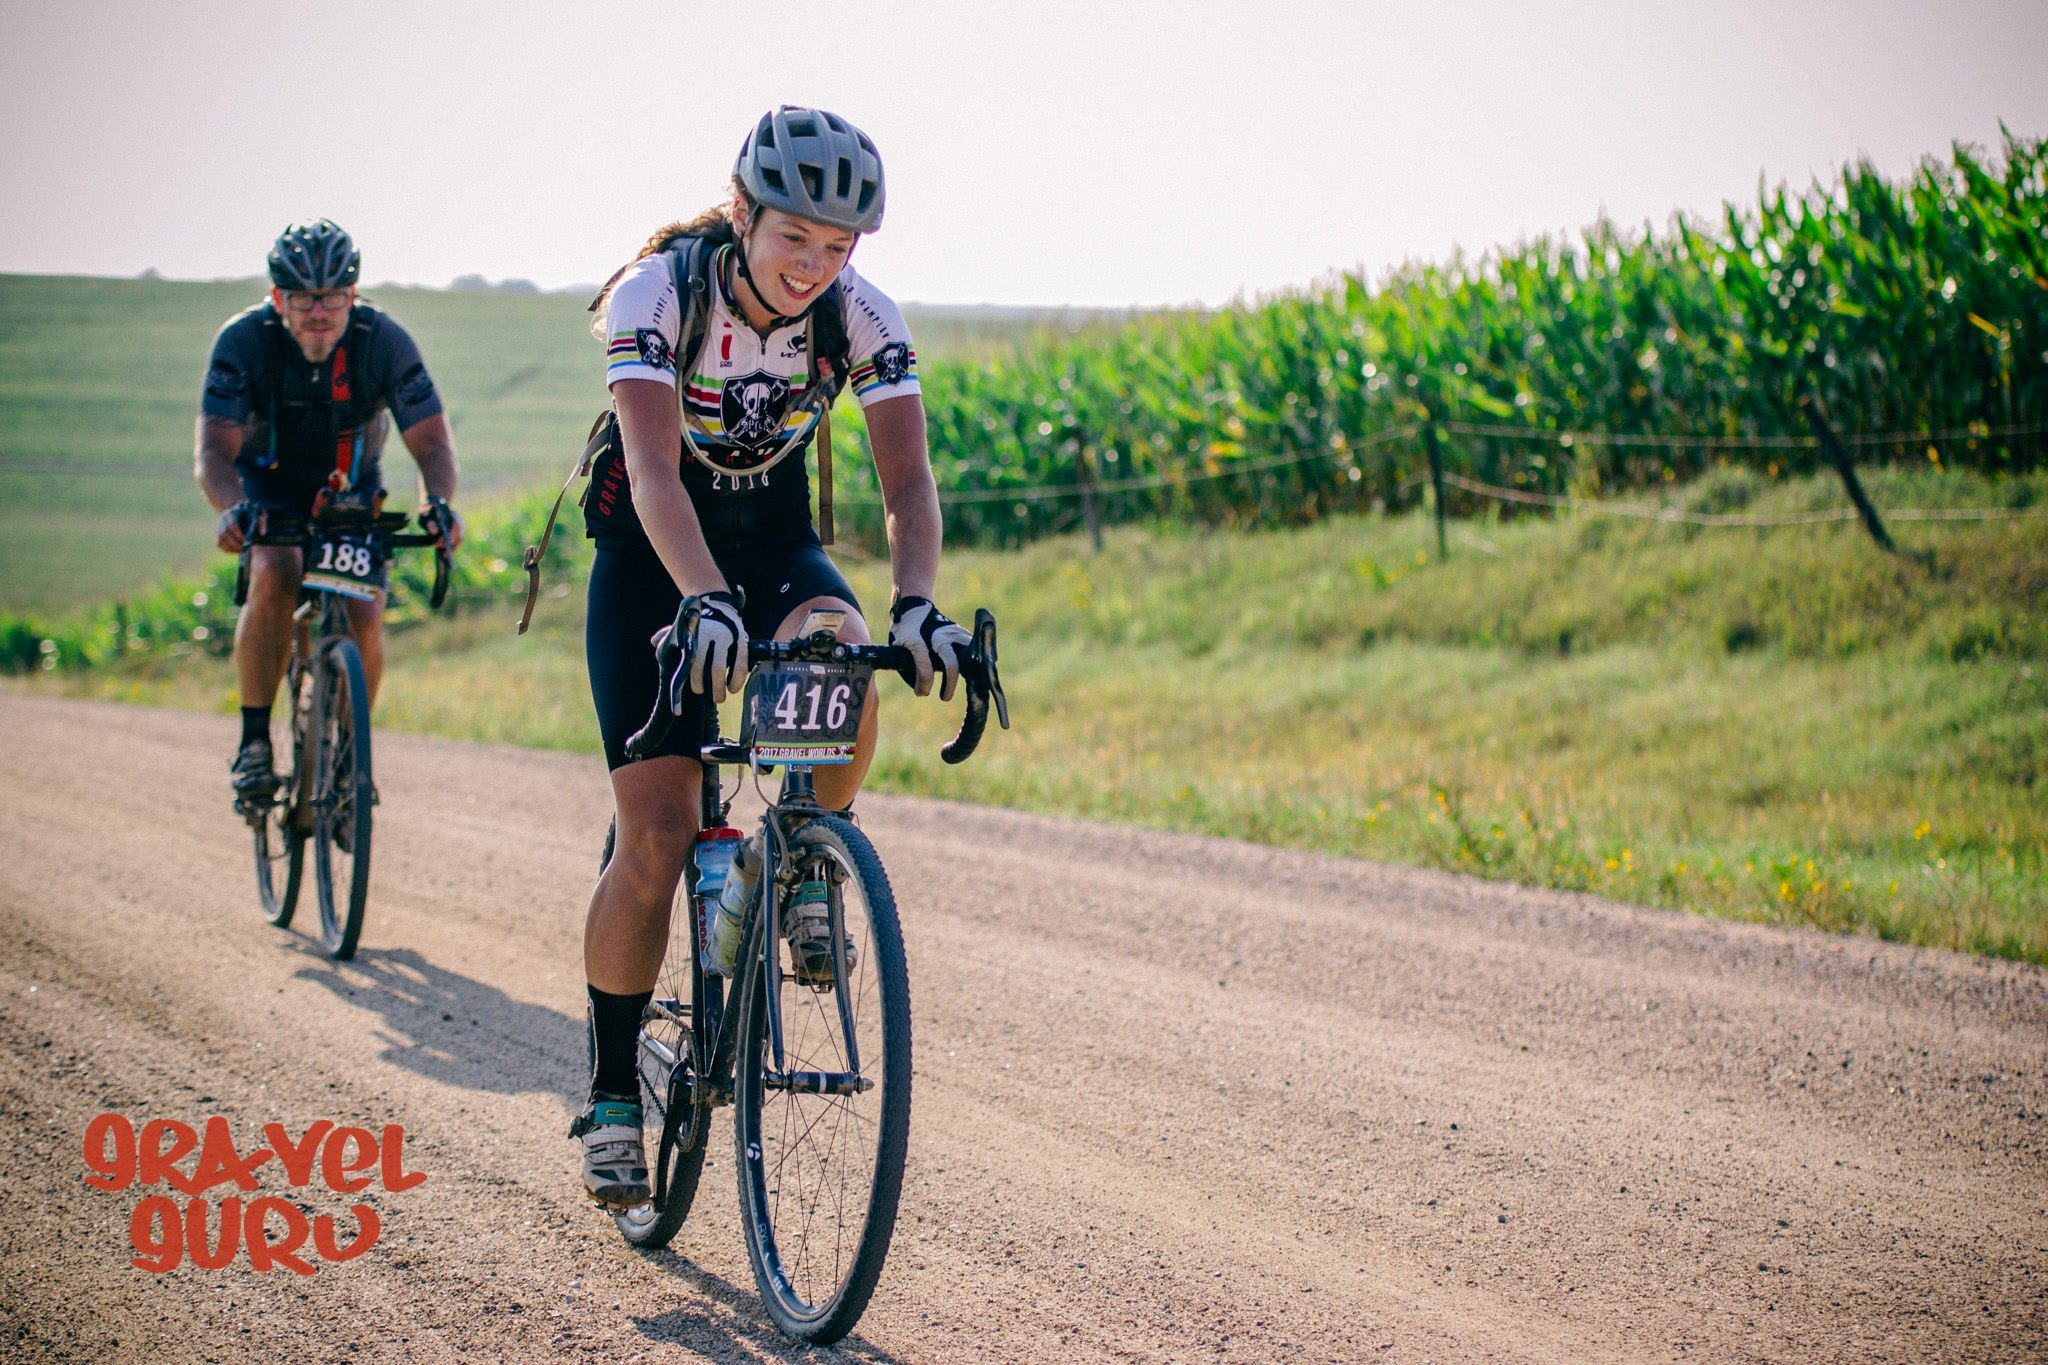 Gravel Worlds 2017. photo:   Gravel Guru